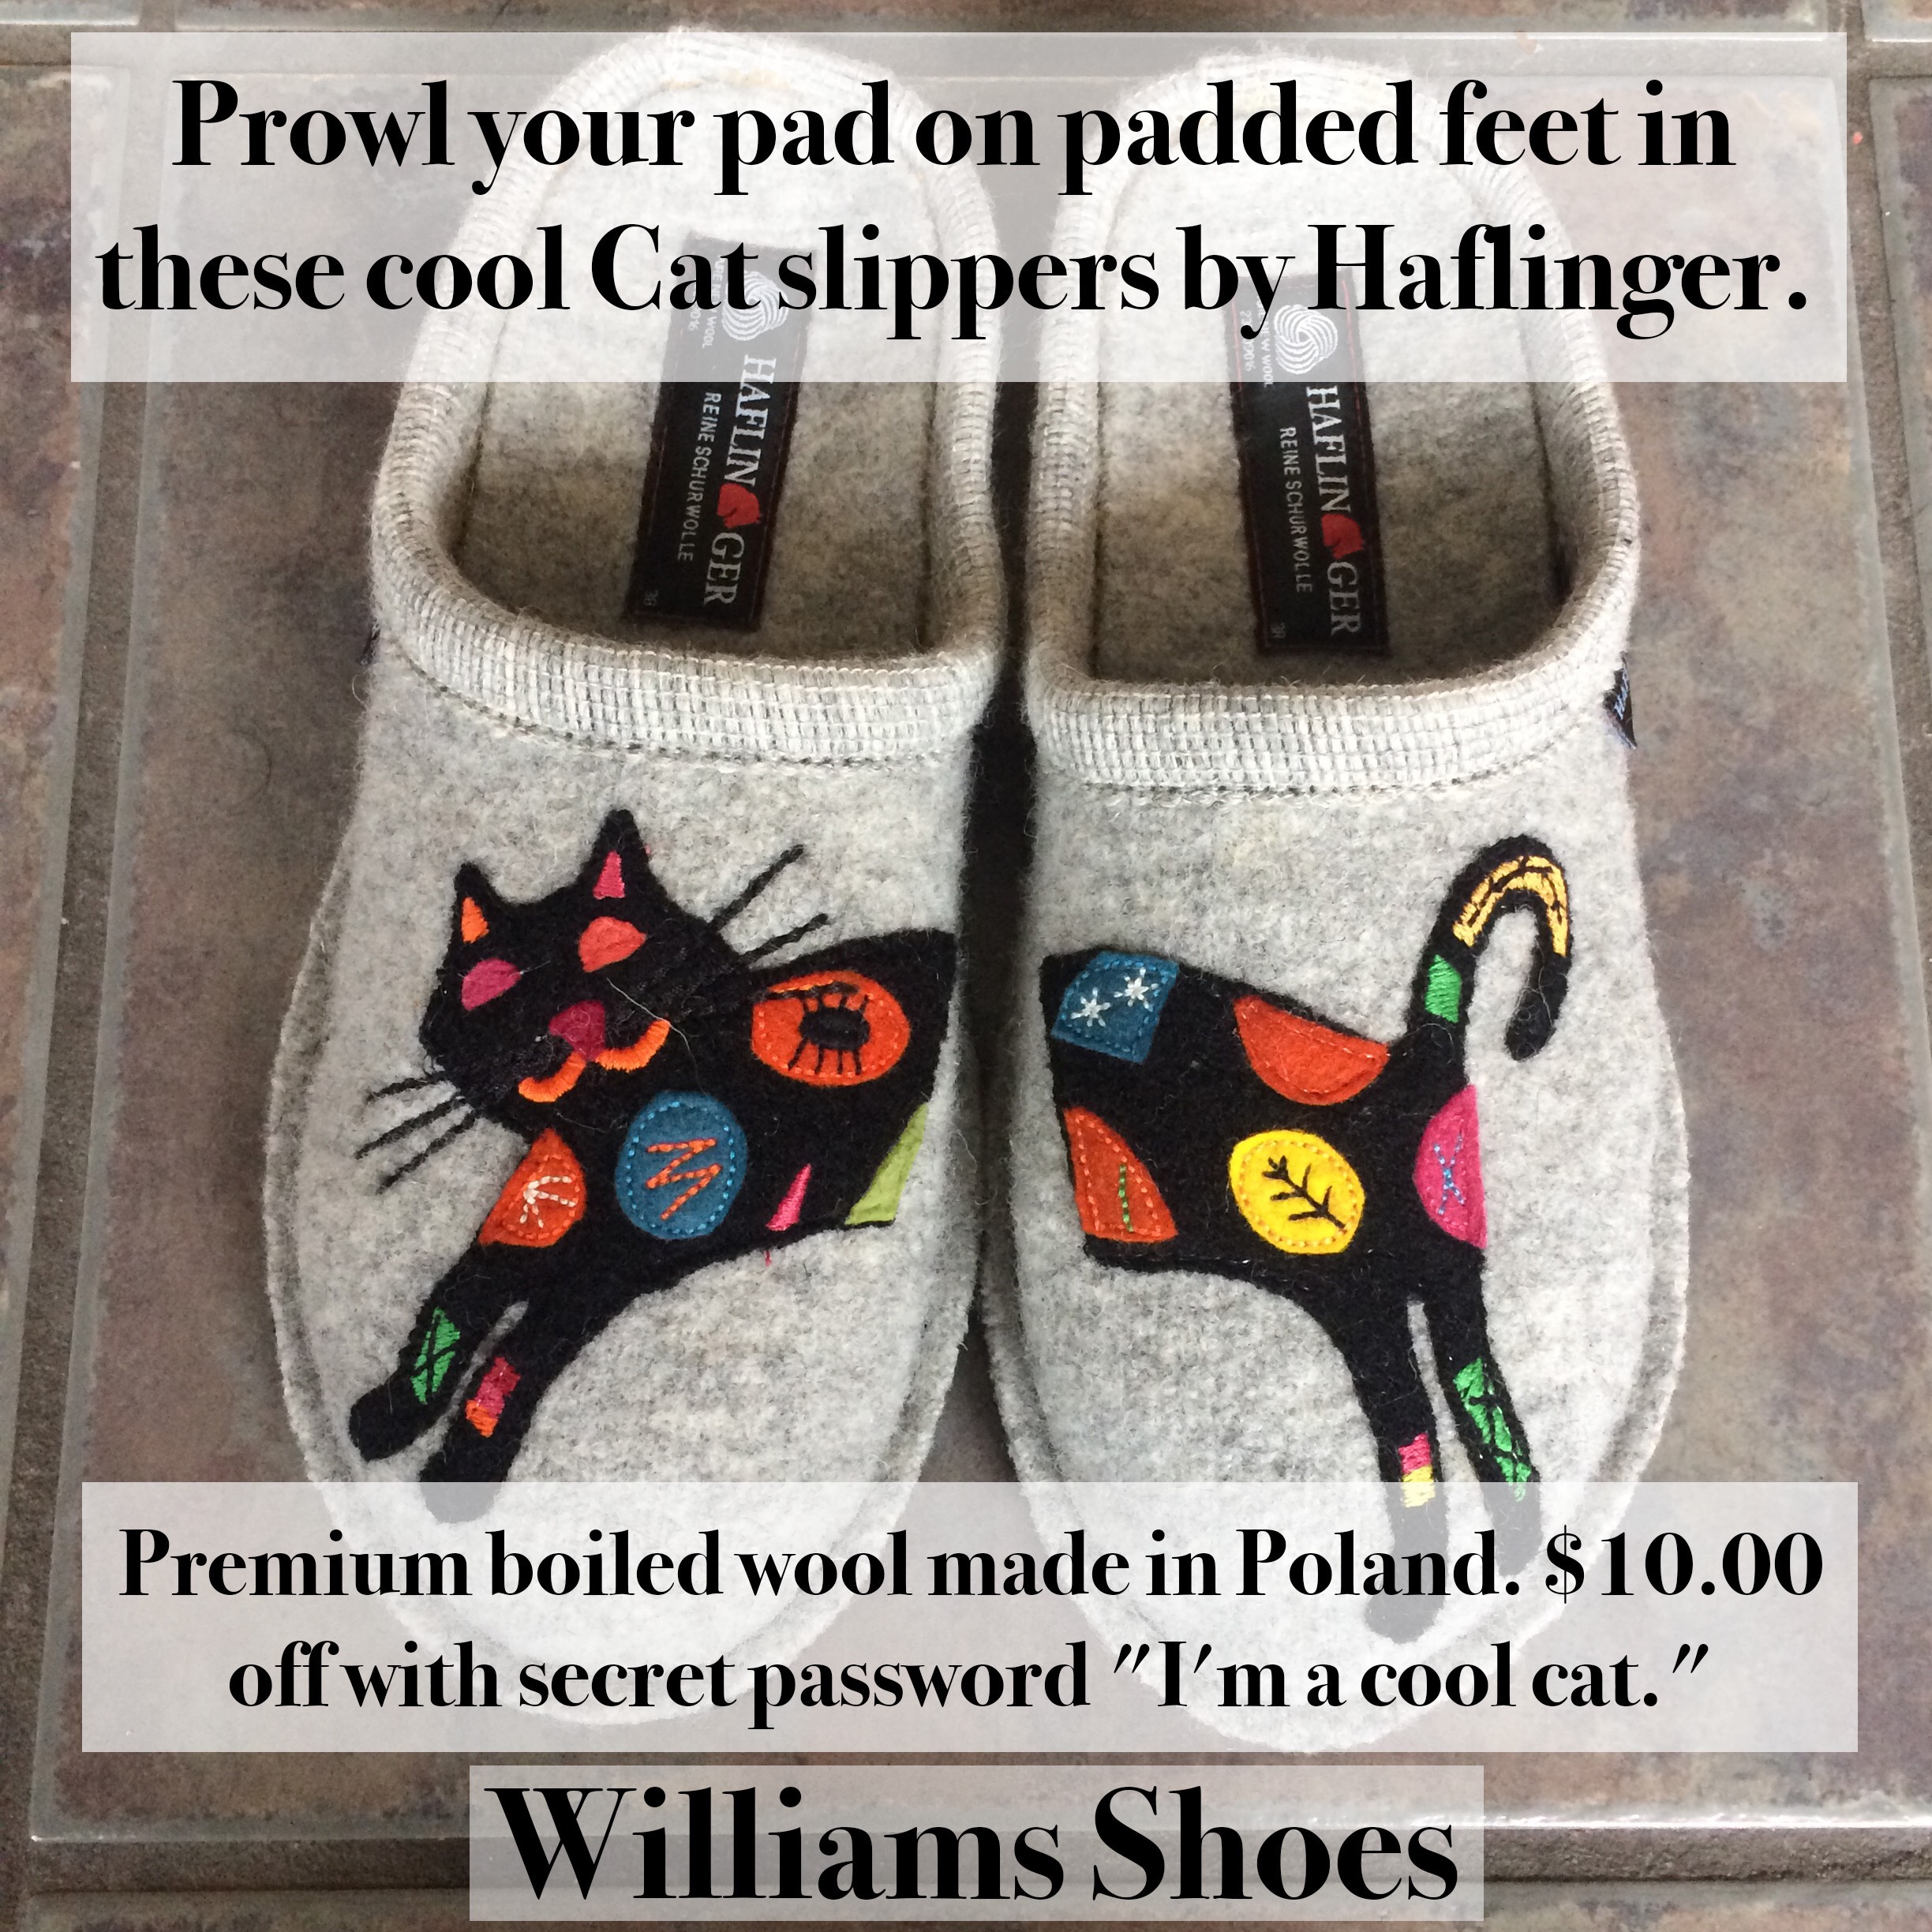 "Prowl your pad on padded feet in these cool Cat slippers by Haflinger. Premium boiled wool made in Poland. $10.00 off with secret password ""I'm a cool cat."" Williams Shoes.